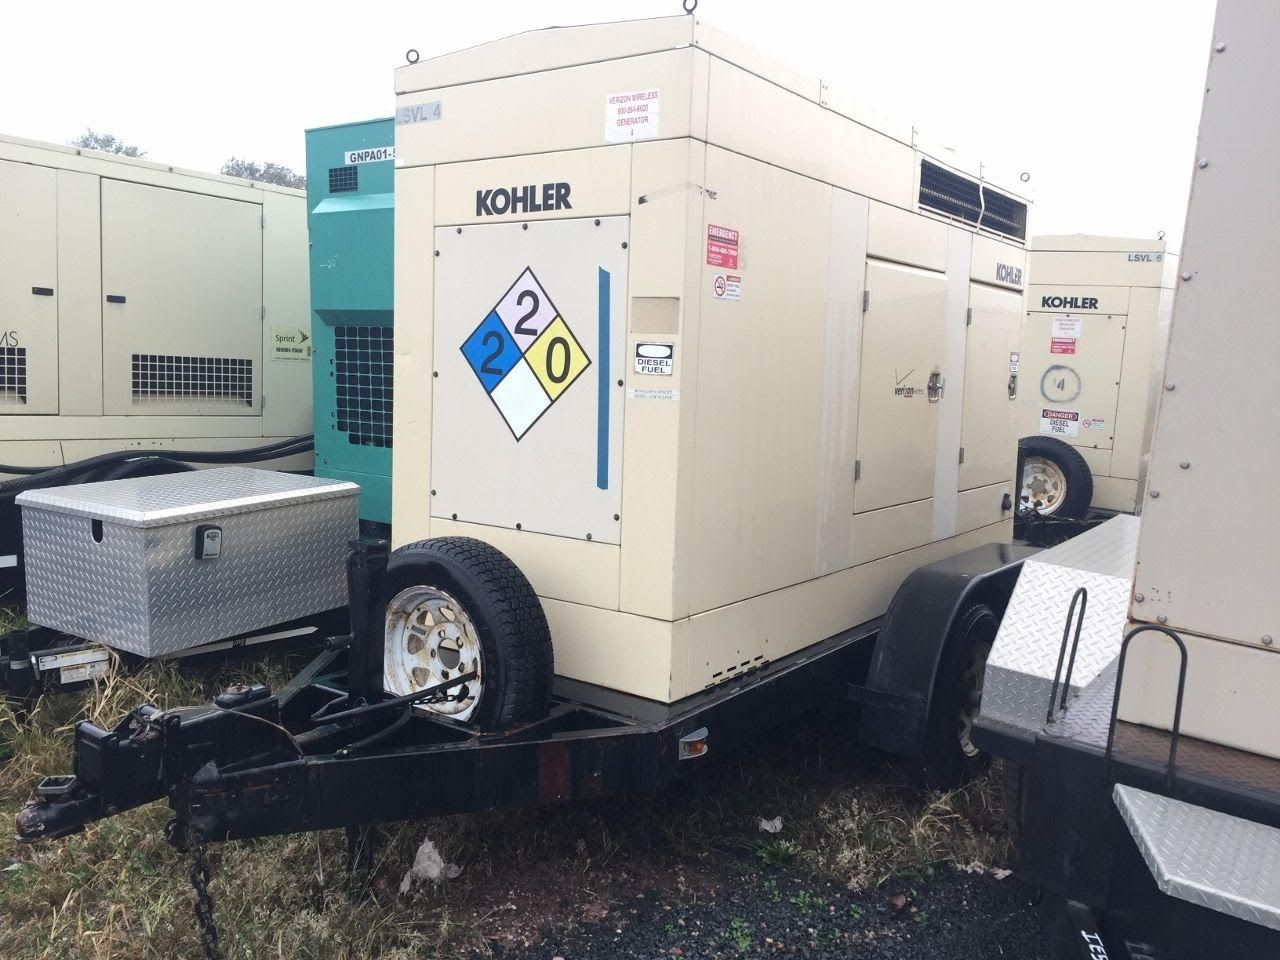 Unit 51647 Manufacturer Kohler Fuel Type Diesel Rating 55 Kw Hours 5740 Voltage 120 208 Amps Portable Diesel Generator Diesel Generators Diesel